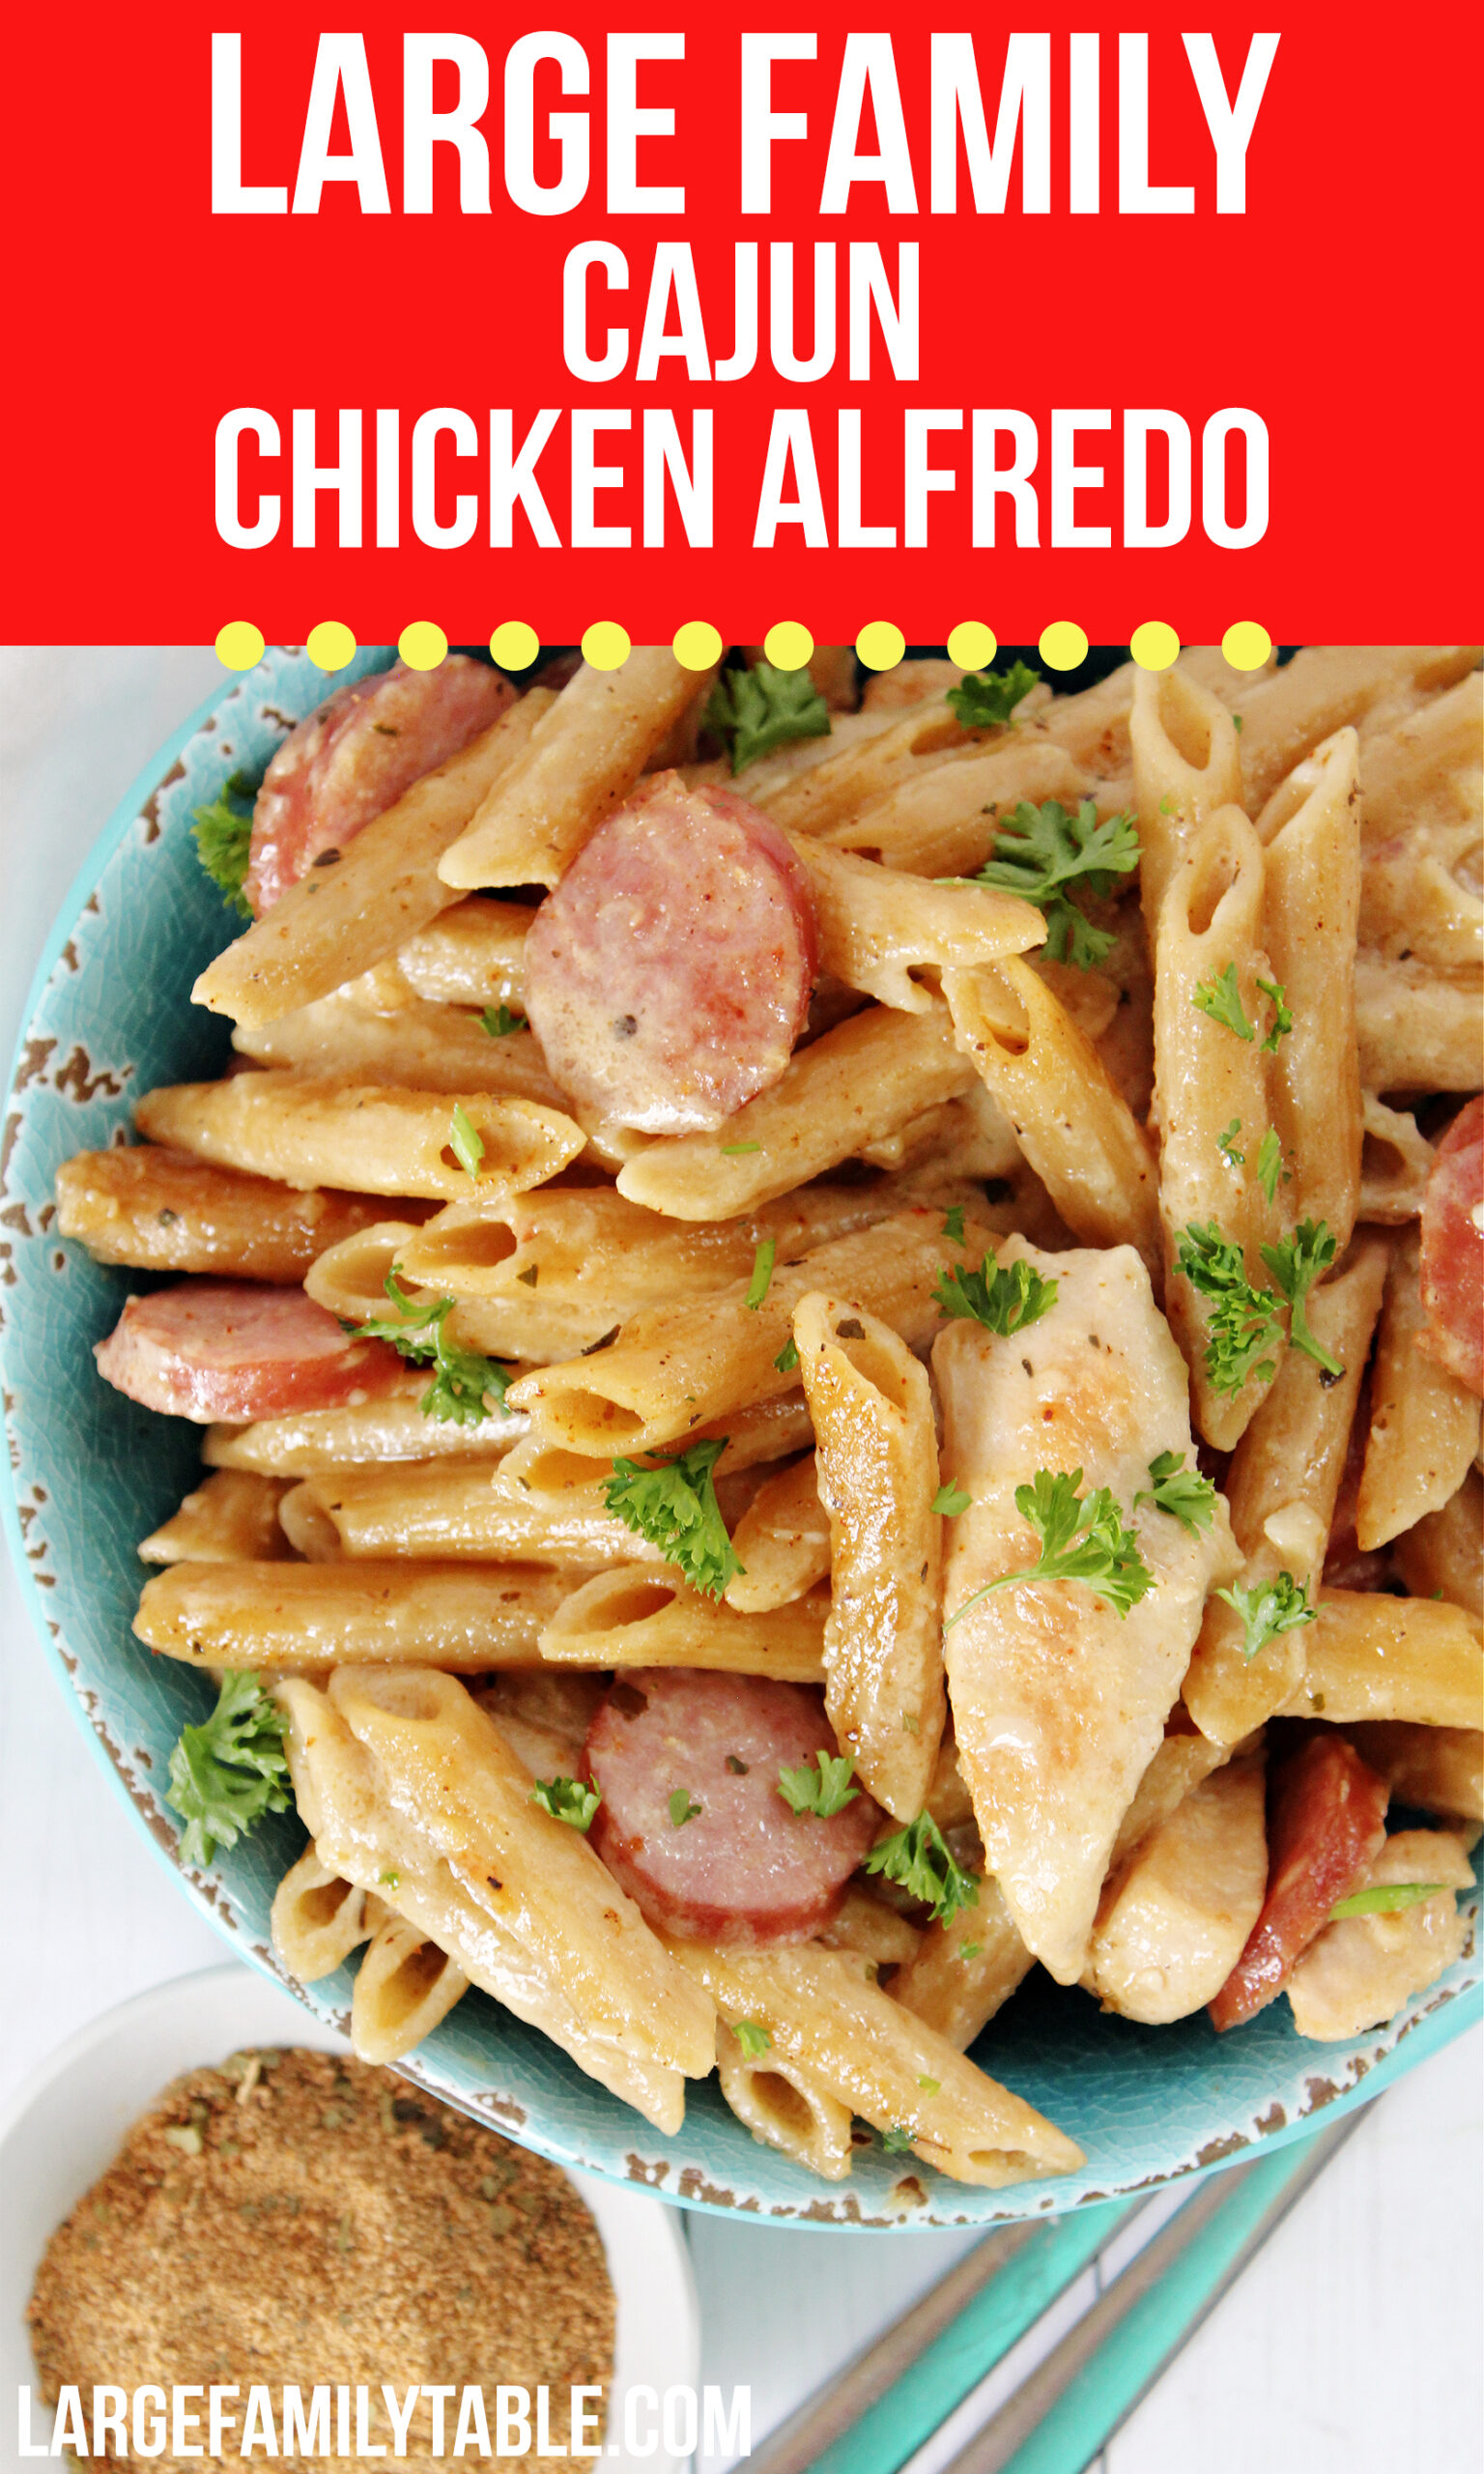 Large Family Cajun Chicken Alfredo